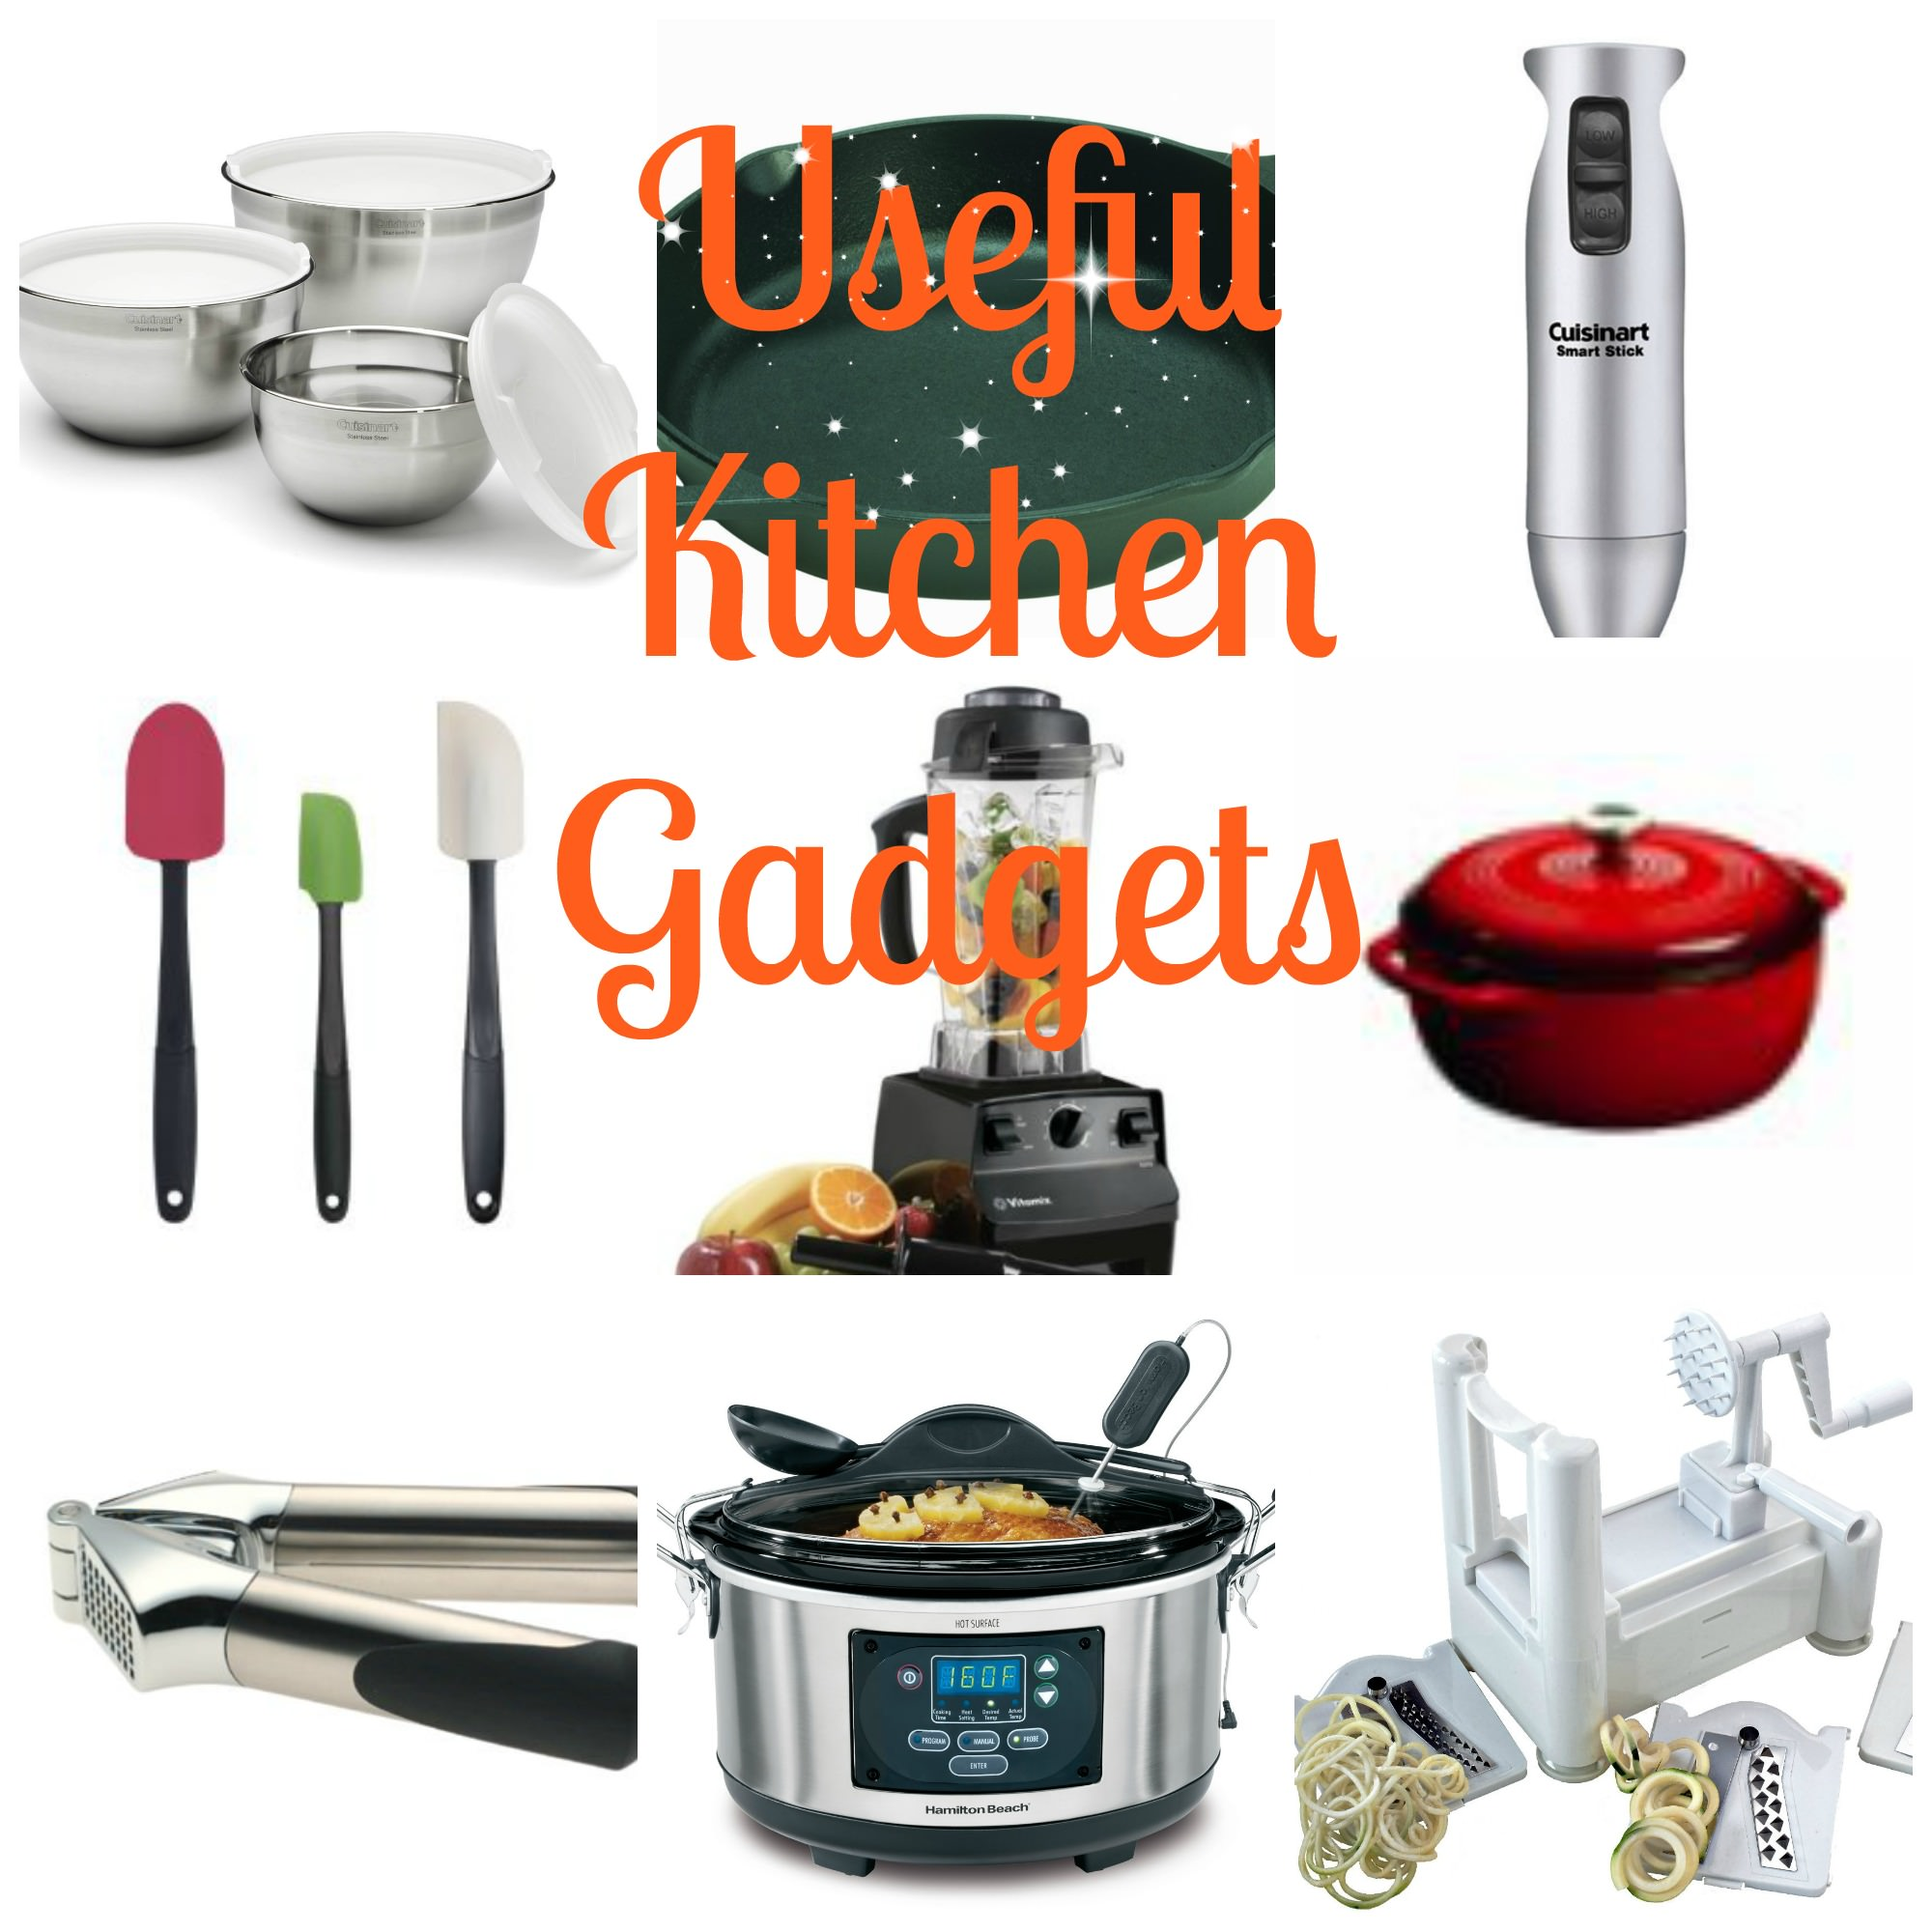 Useful Kitchen Gadgets collage